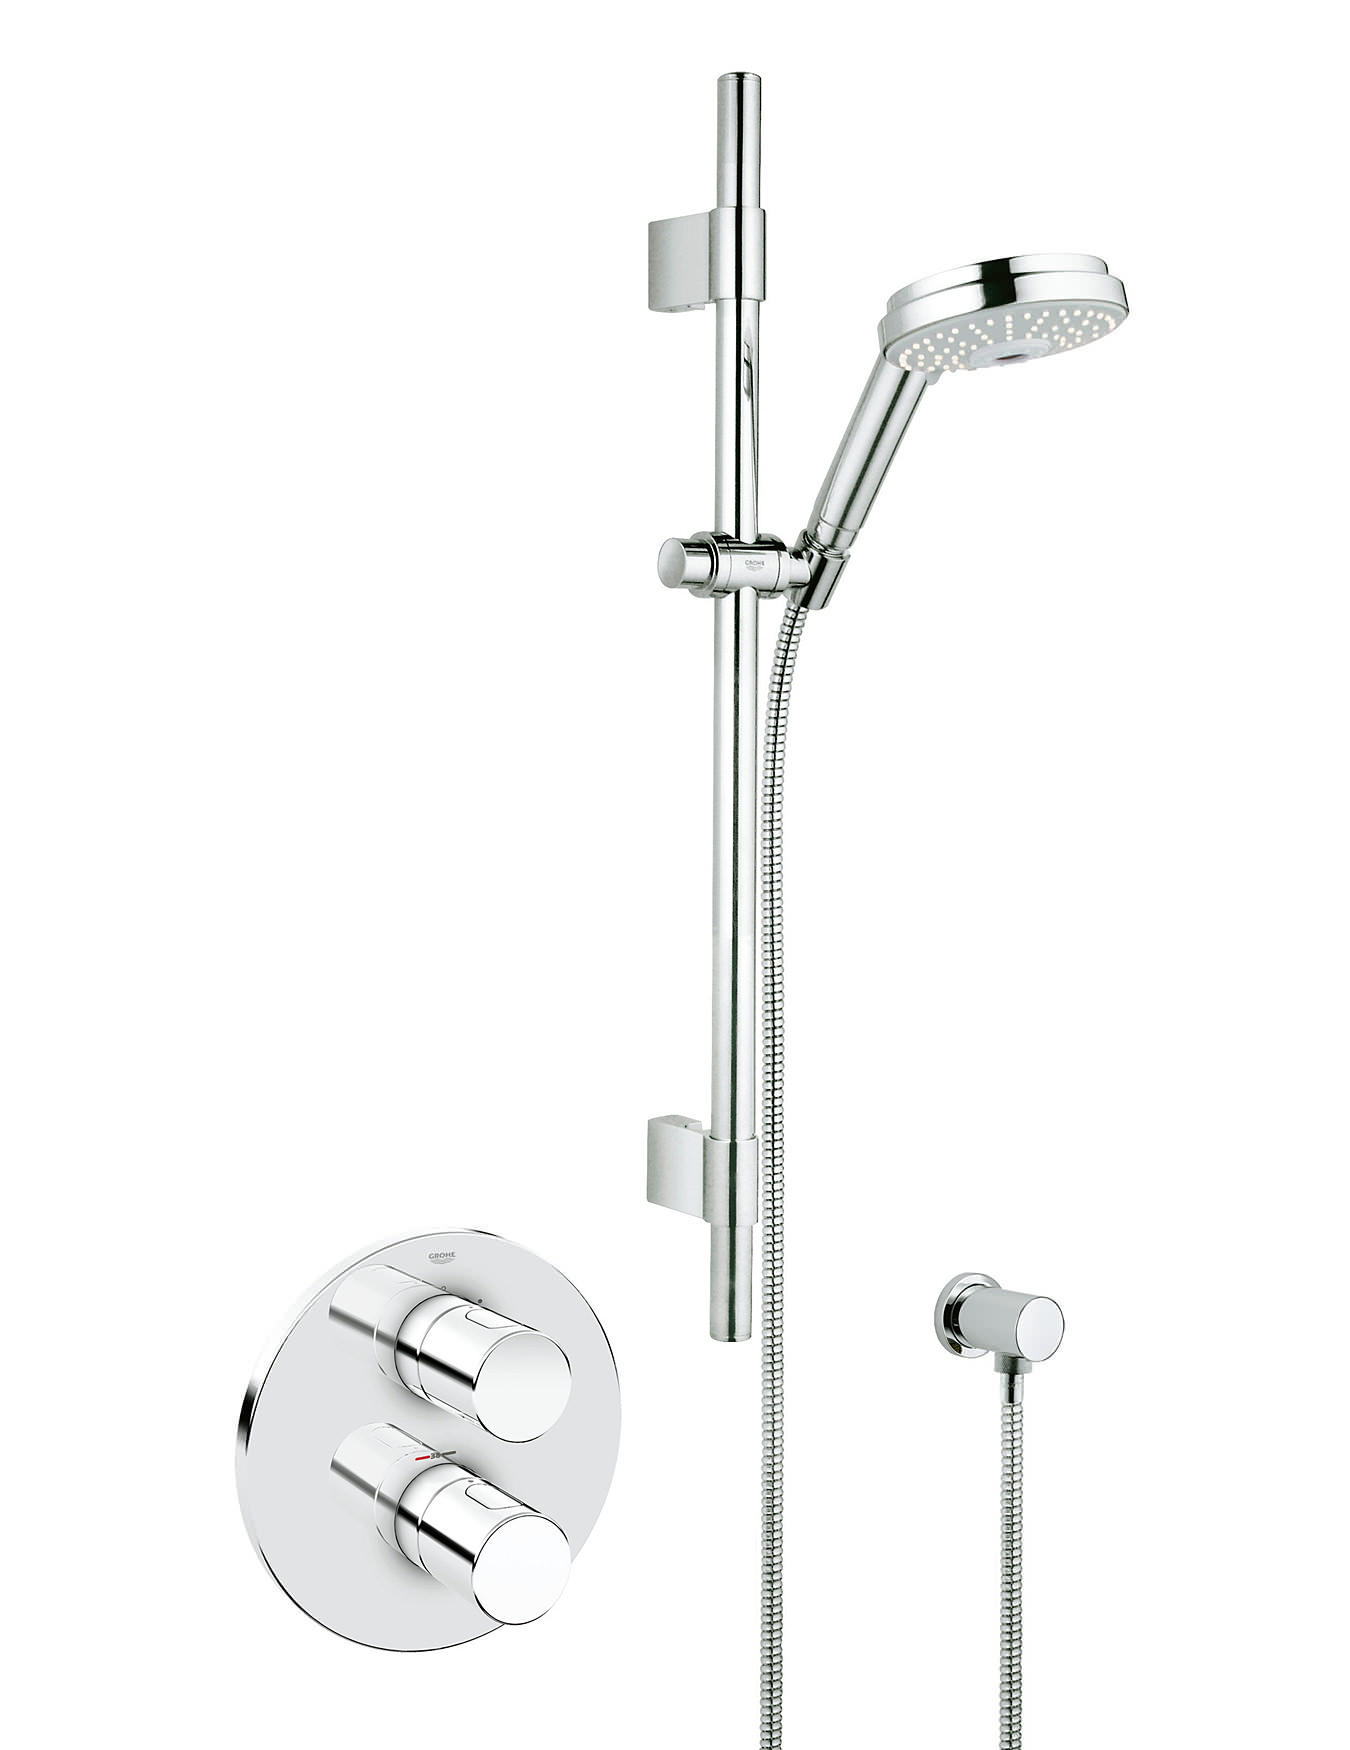 grohe grohtherm 3000 cosmopolitan concealed thermostatic shower set. Black Bedroom Furniture Sets. Home Design Ideas